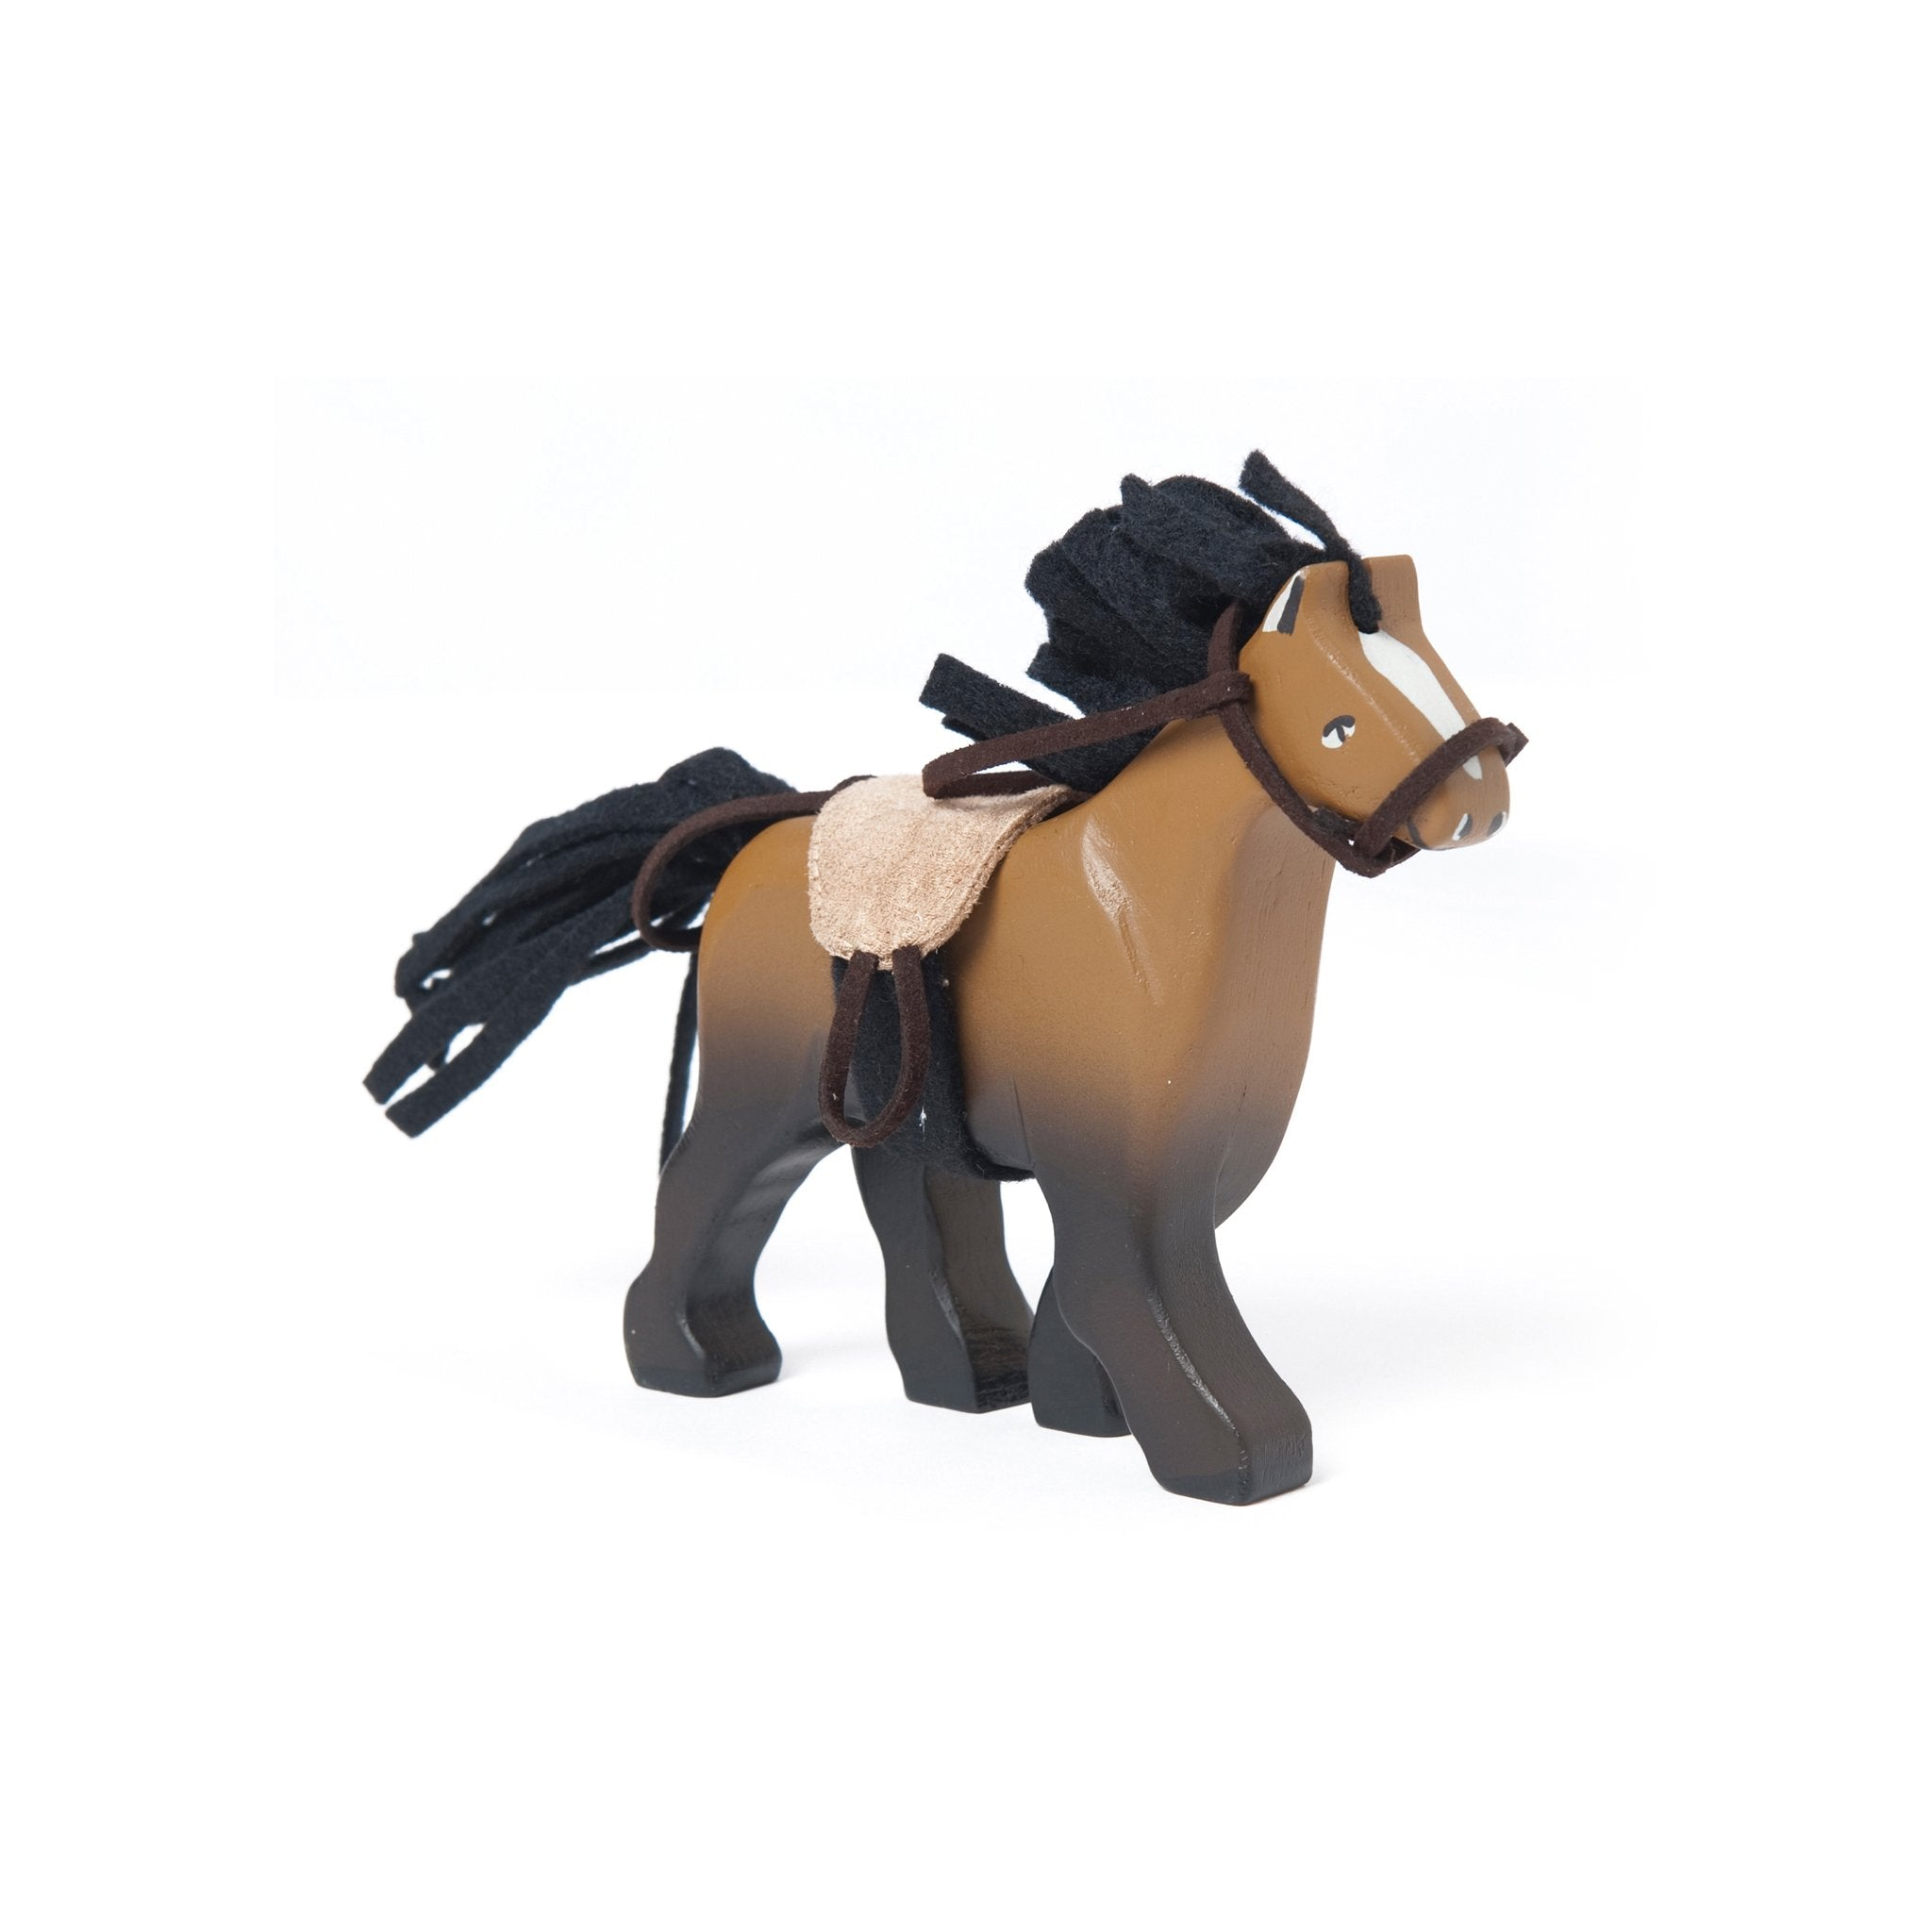 2 Figures Horse-Papo 51525 Rider Fashion-New 52006 Horse